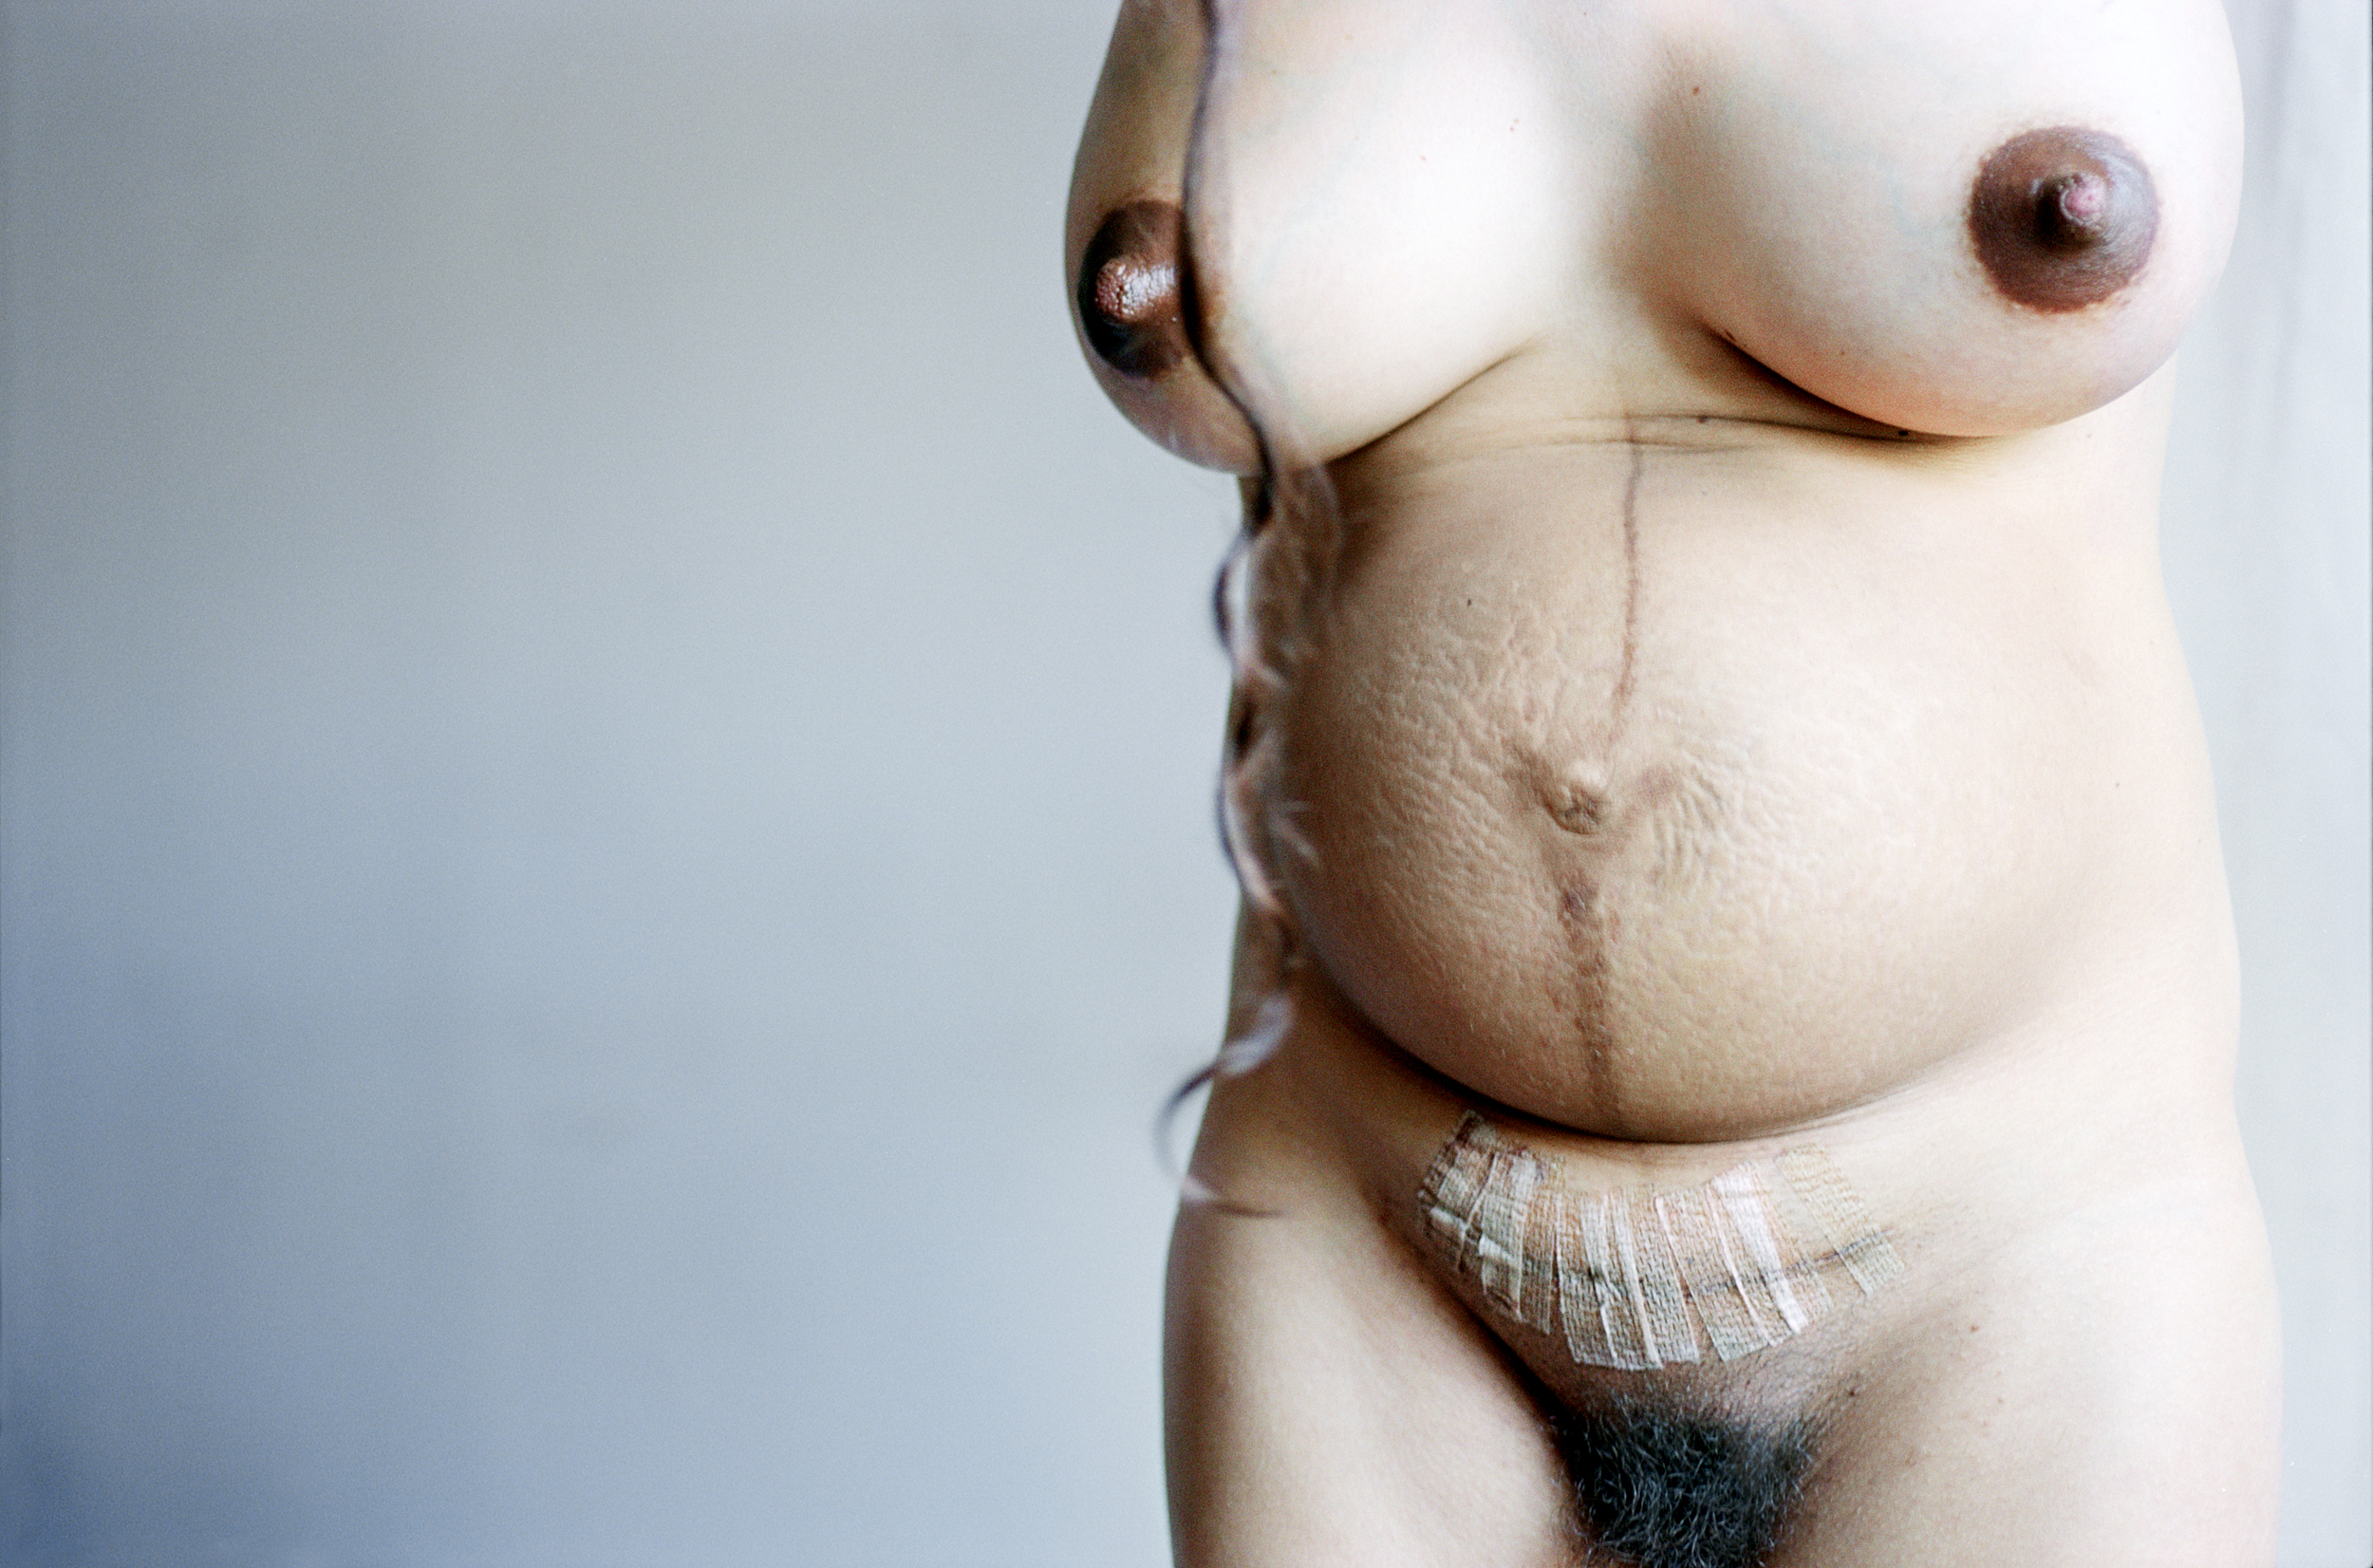 Elinor Carucci. My Belly After Giving Birth and C Section, 2004